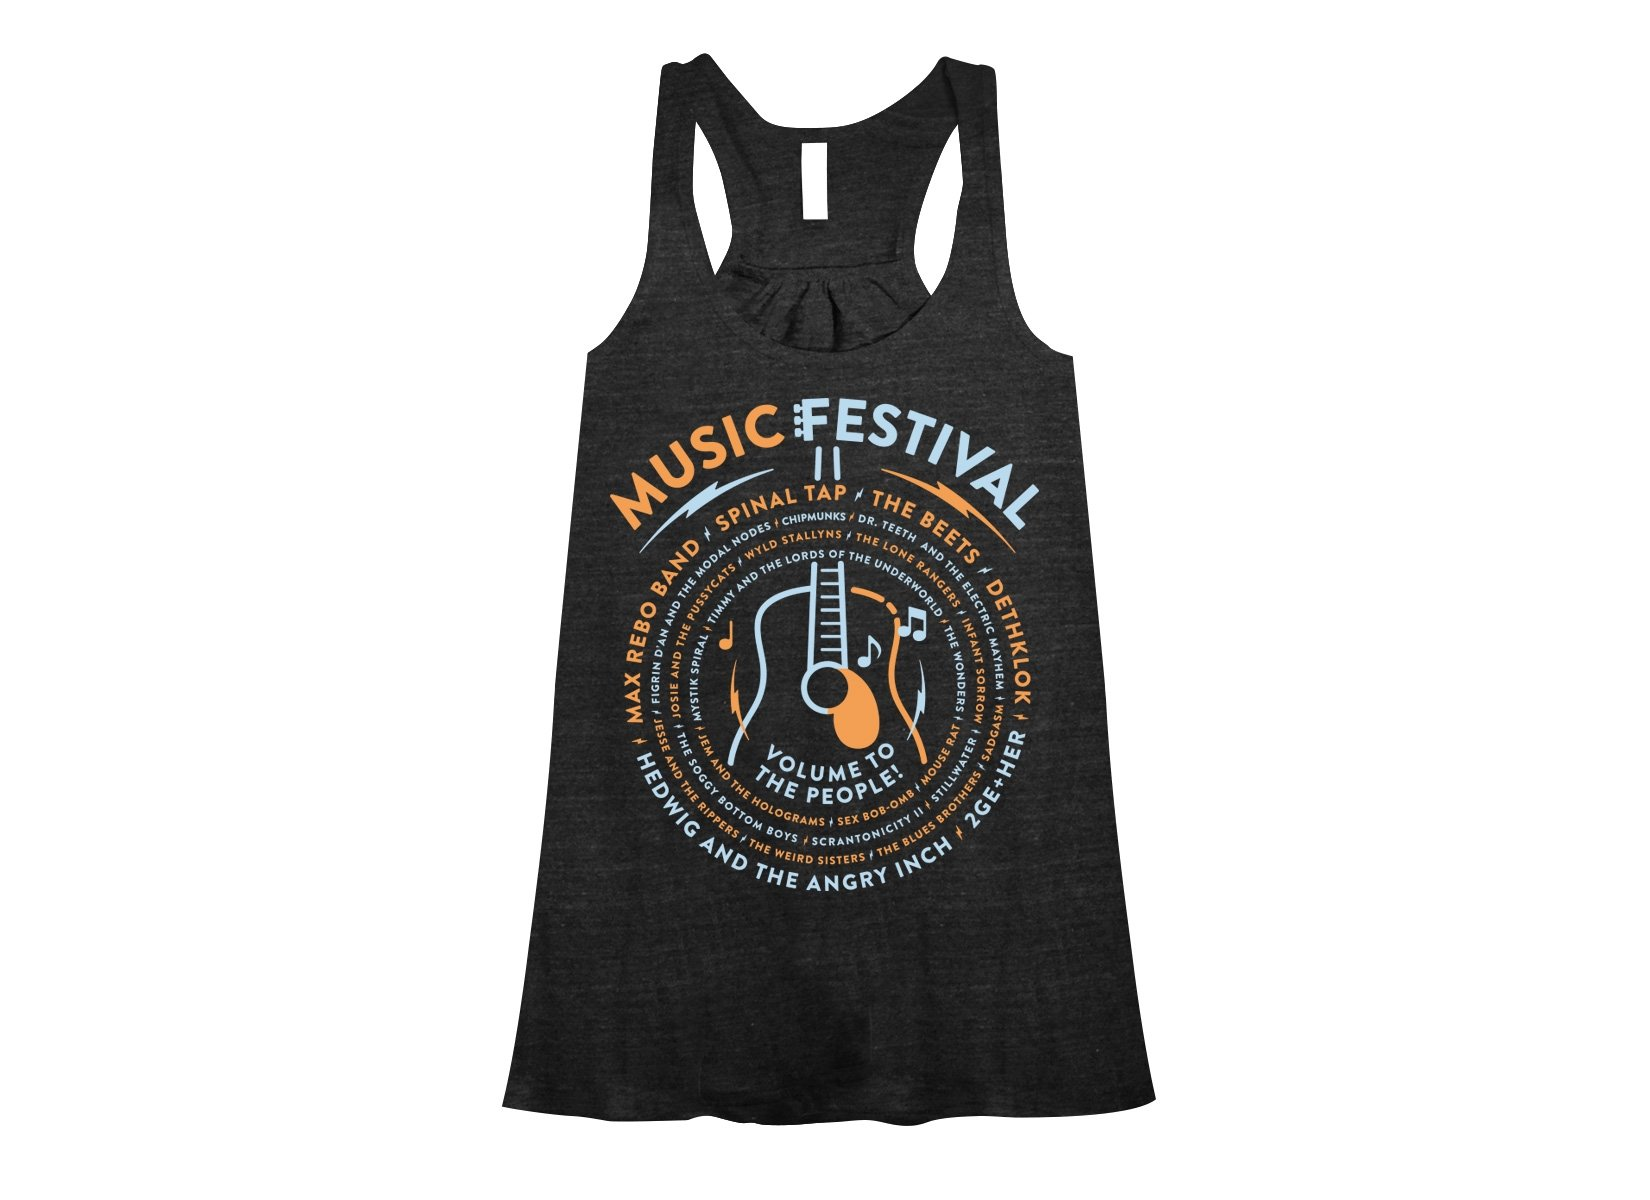 Music Festival on Womens Tanks T-Shirt